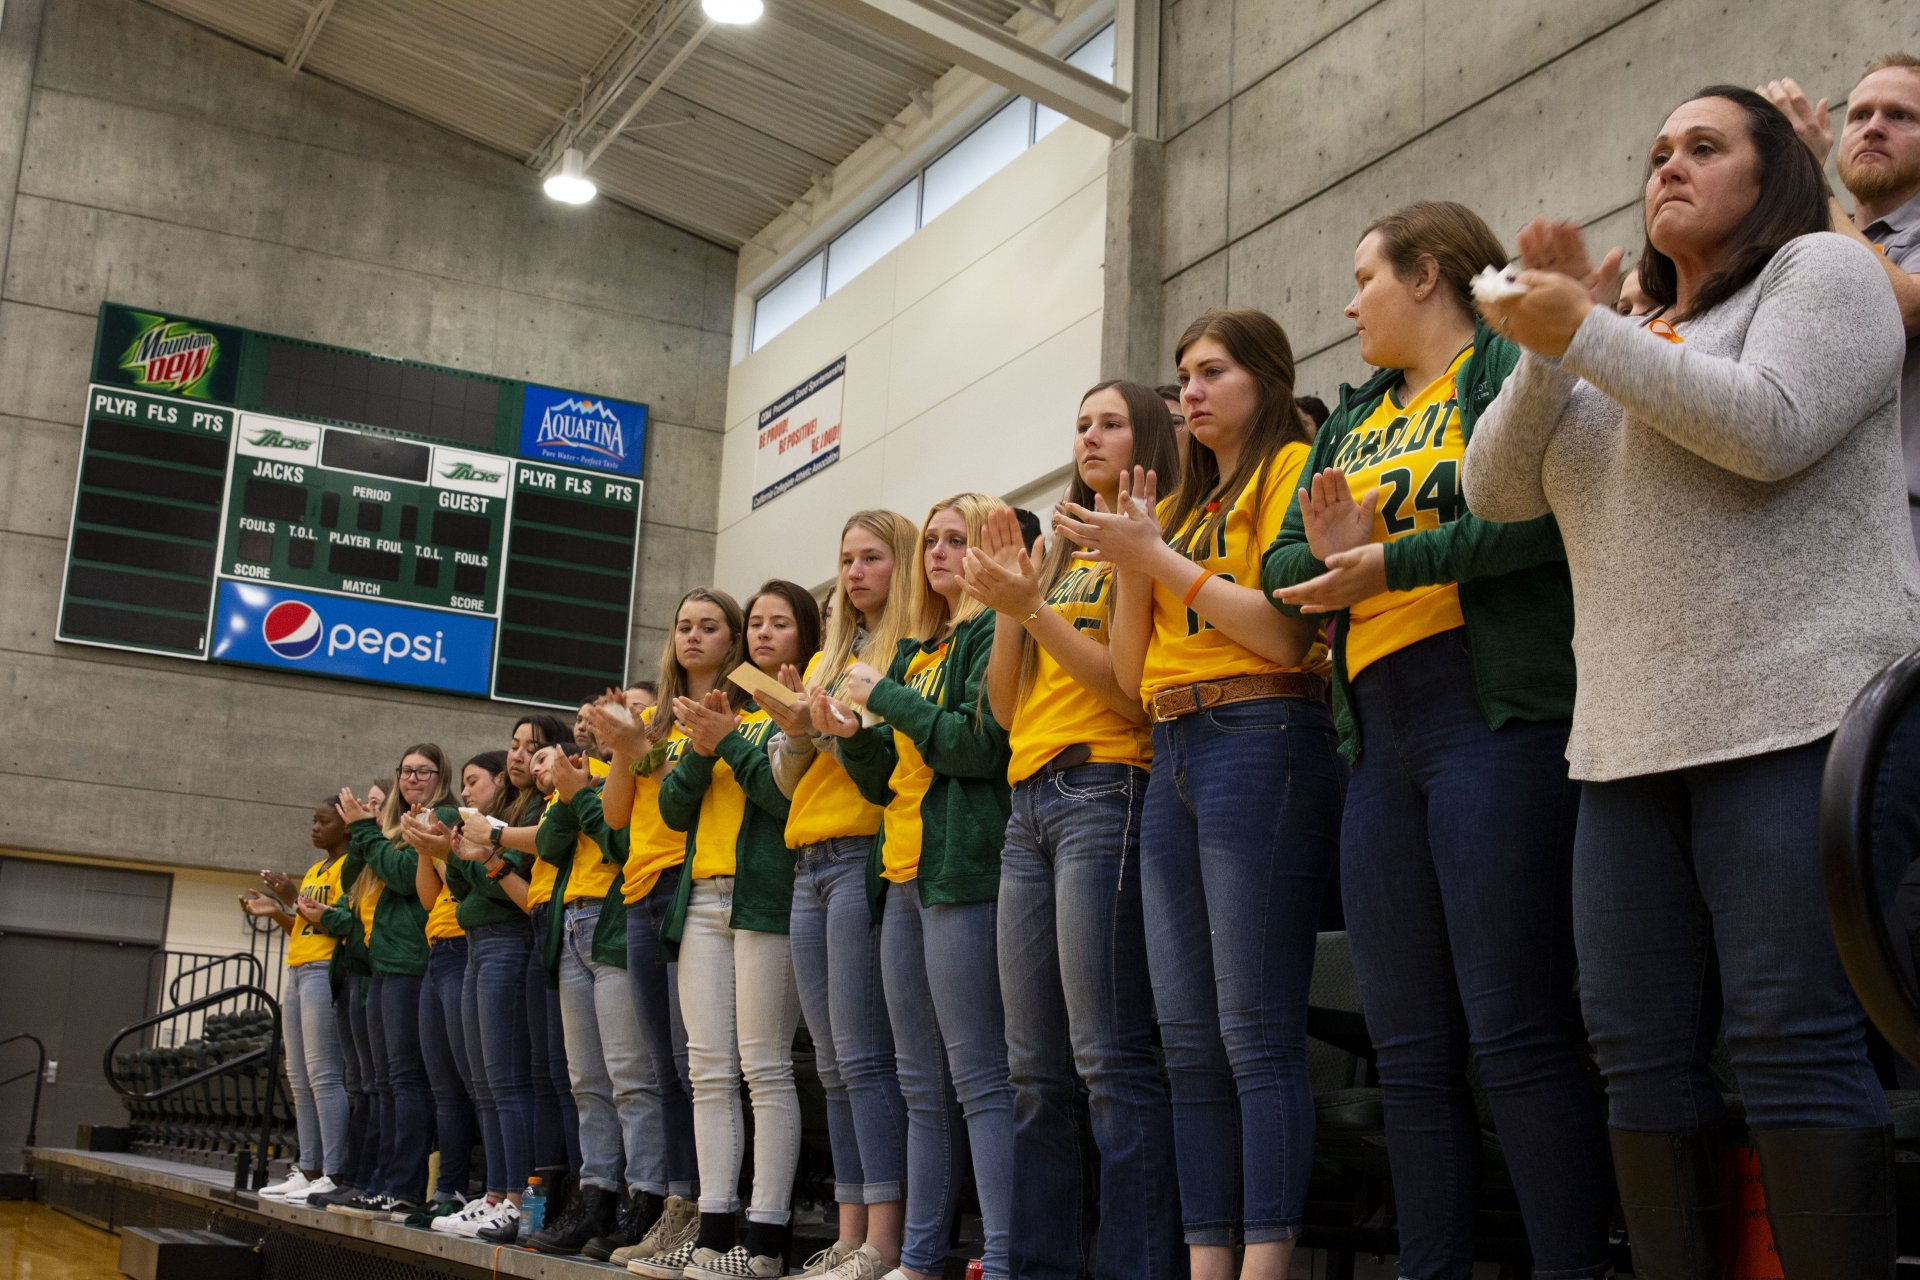 Members of the Humboldt State softball team stand and applaud with Head Coach Shelli Sarchett as they honor teammate Evelyn Andrews at her celebration of life event at Lumberjack Arena on Feb. 23. | Photo by Thomas Lal